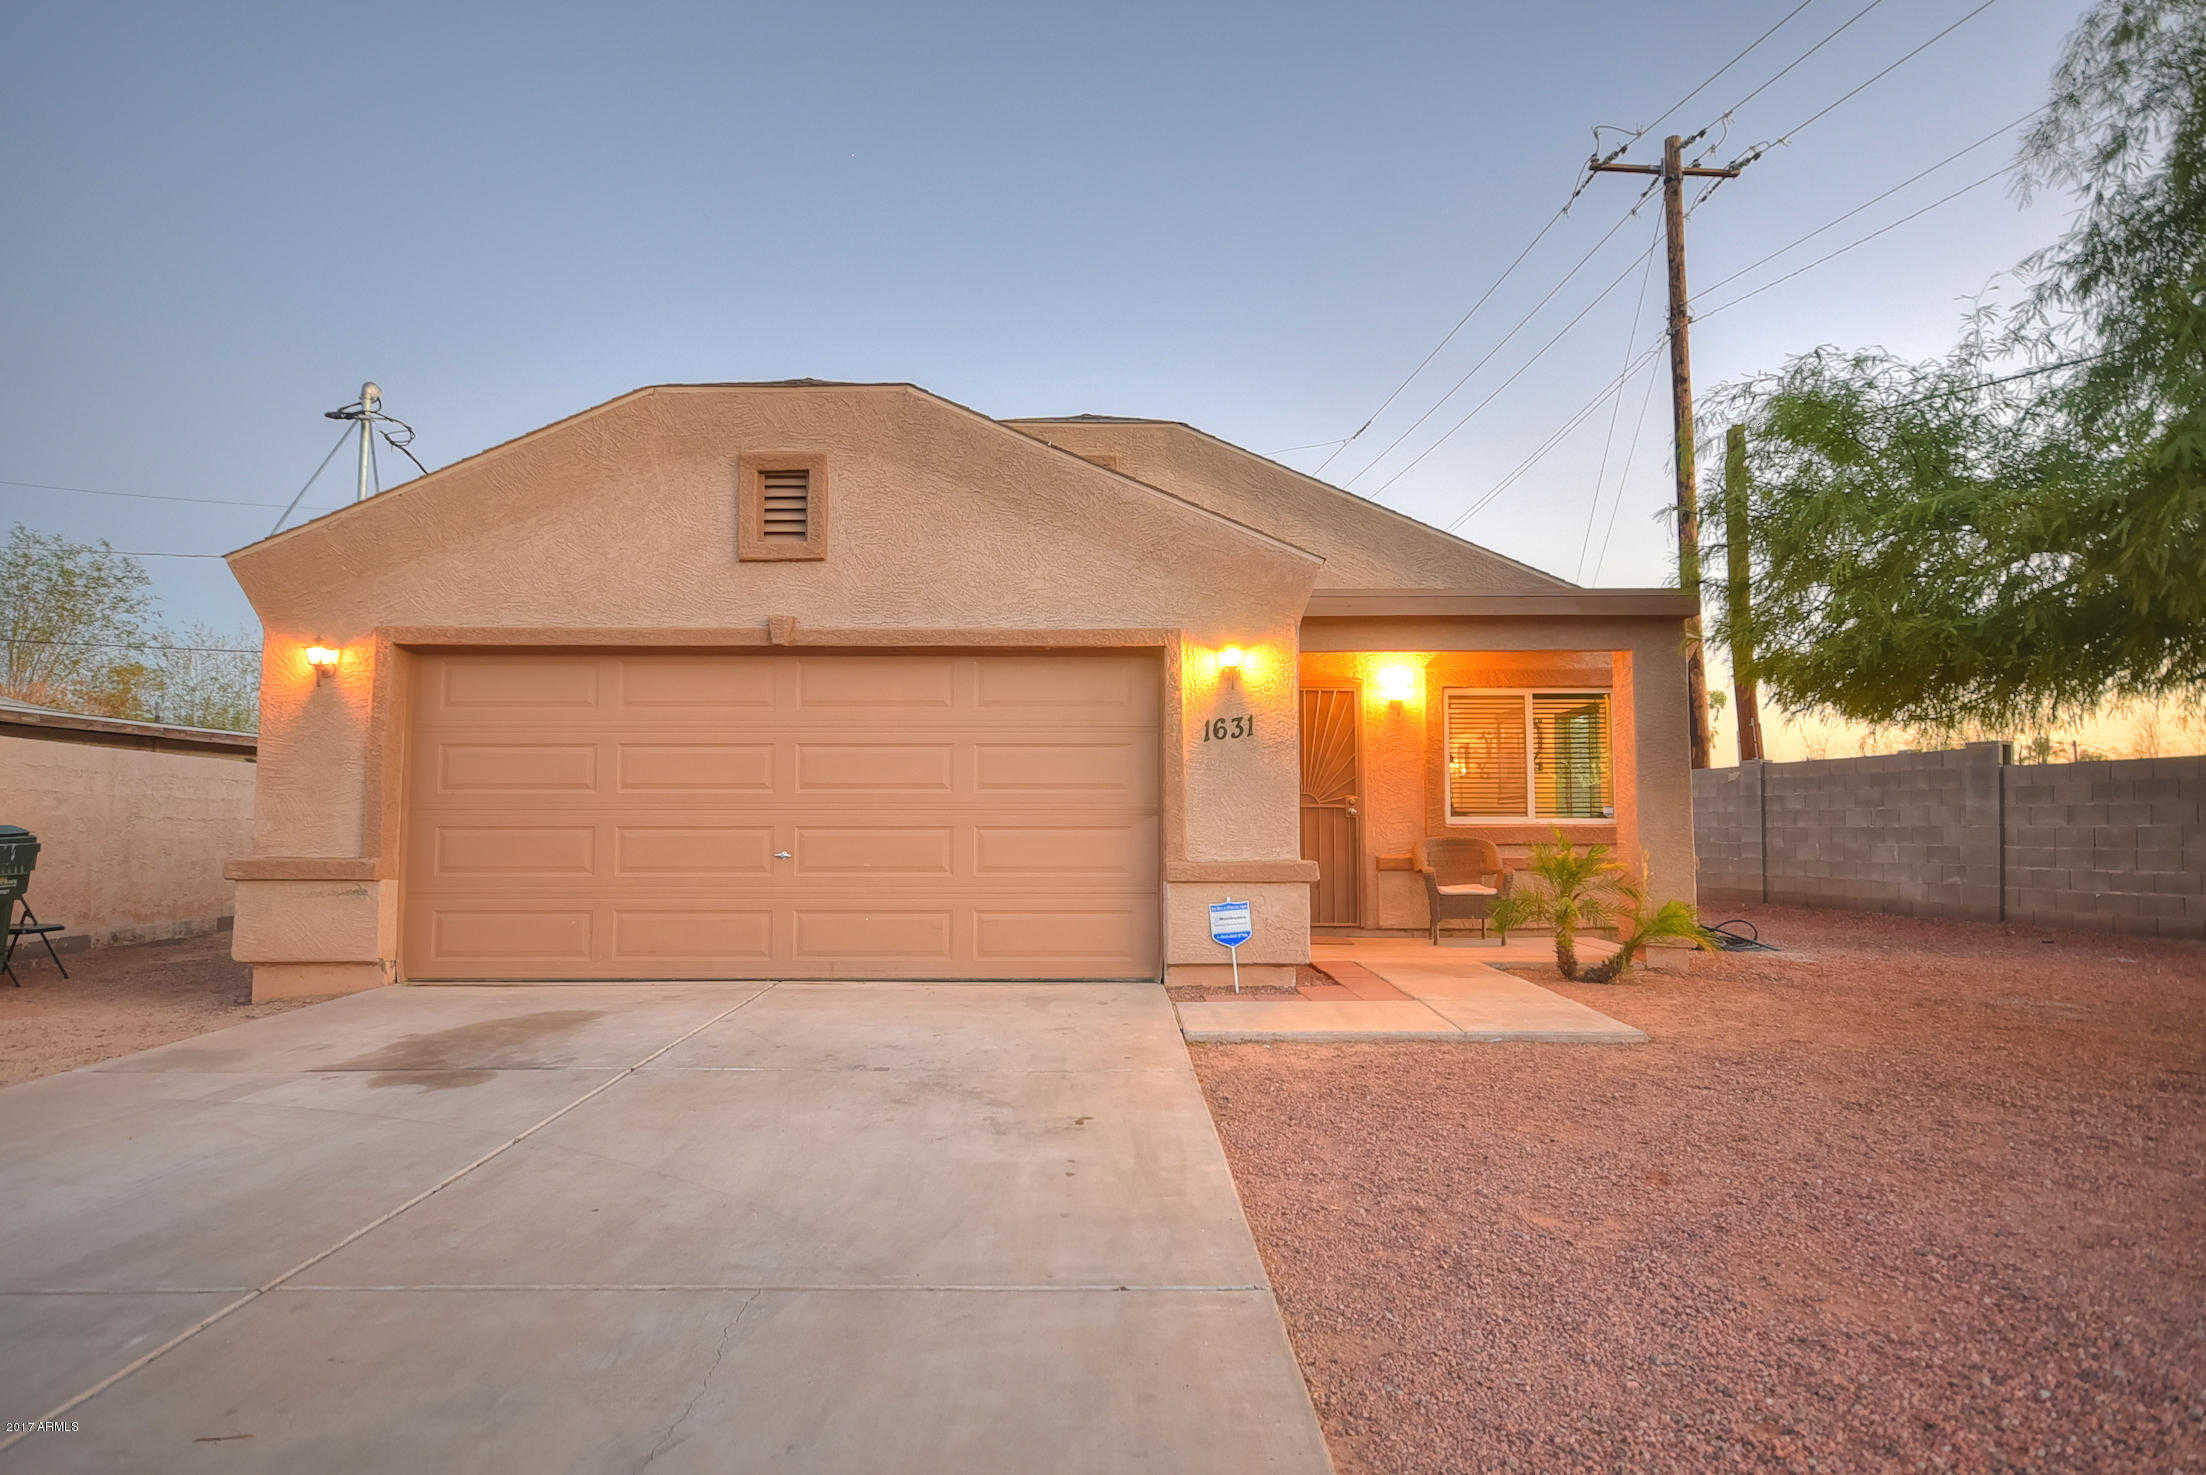 $200,000 - 3Br/2Ba - Home for Sale in Overall Place Blks 2, 6, 7, Phoenix